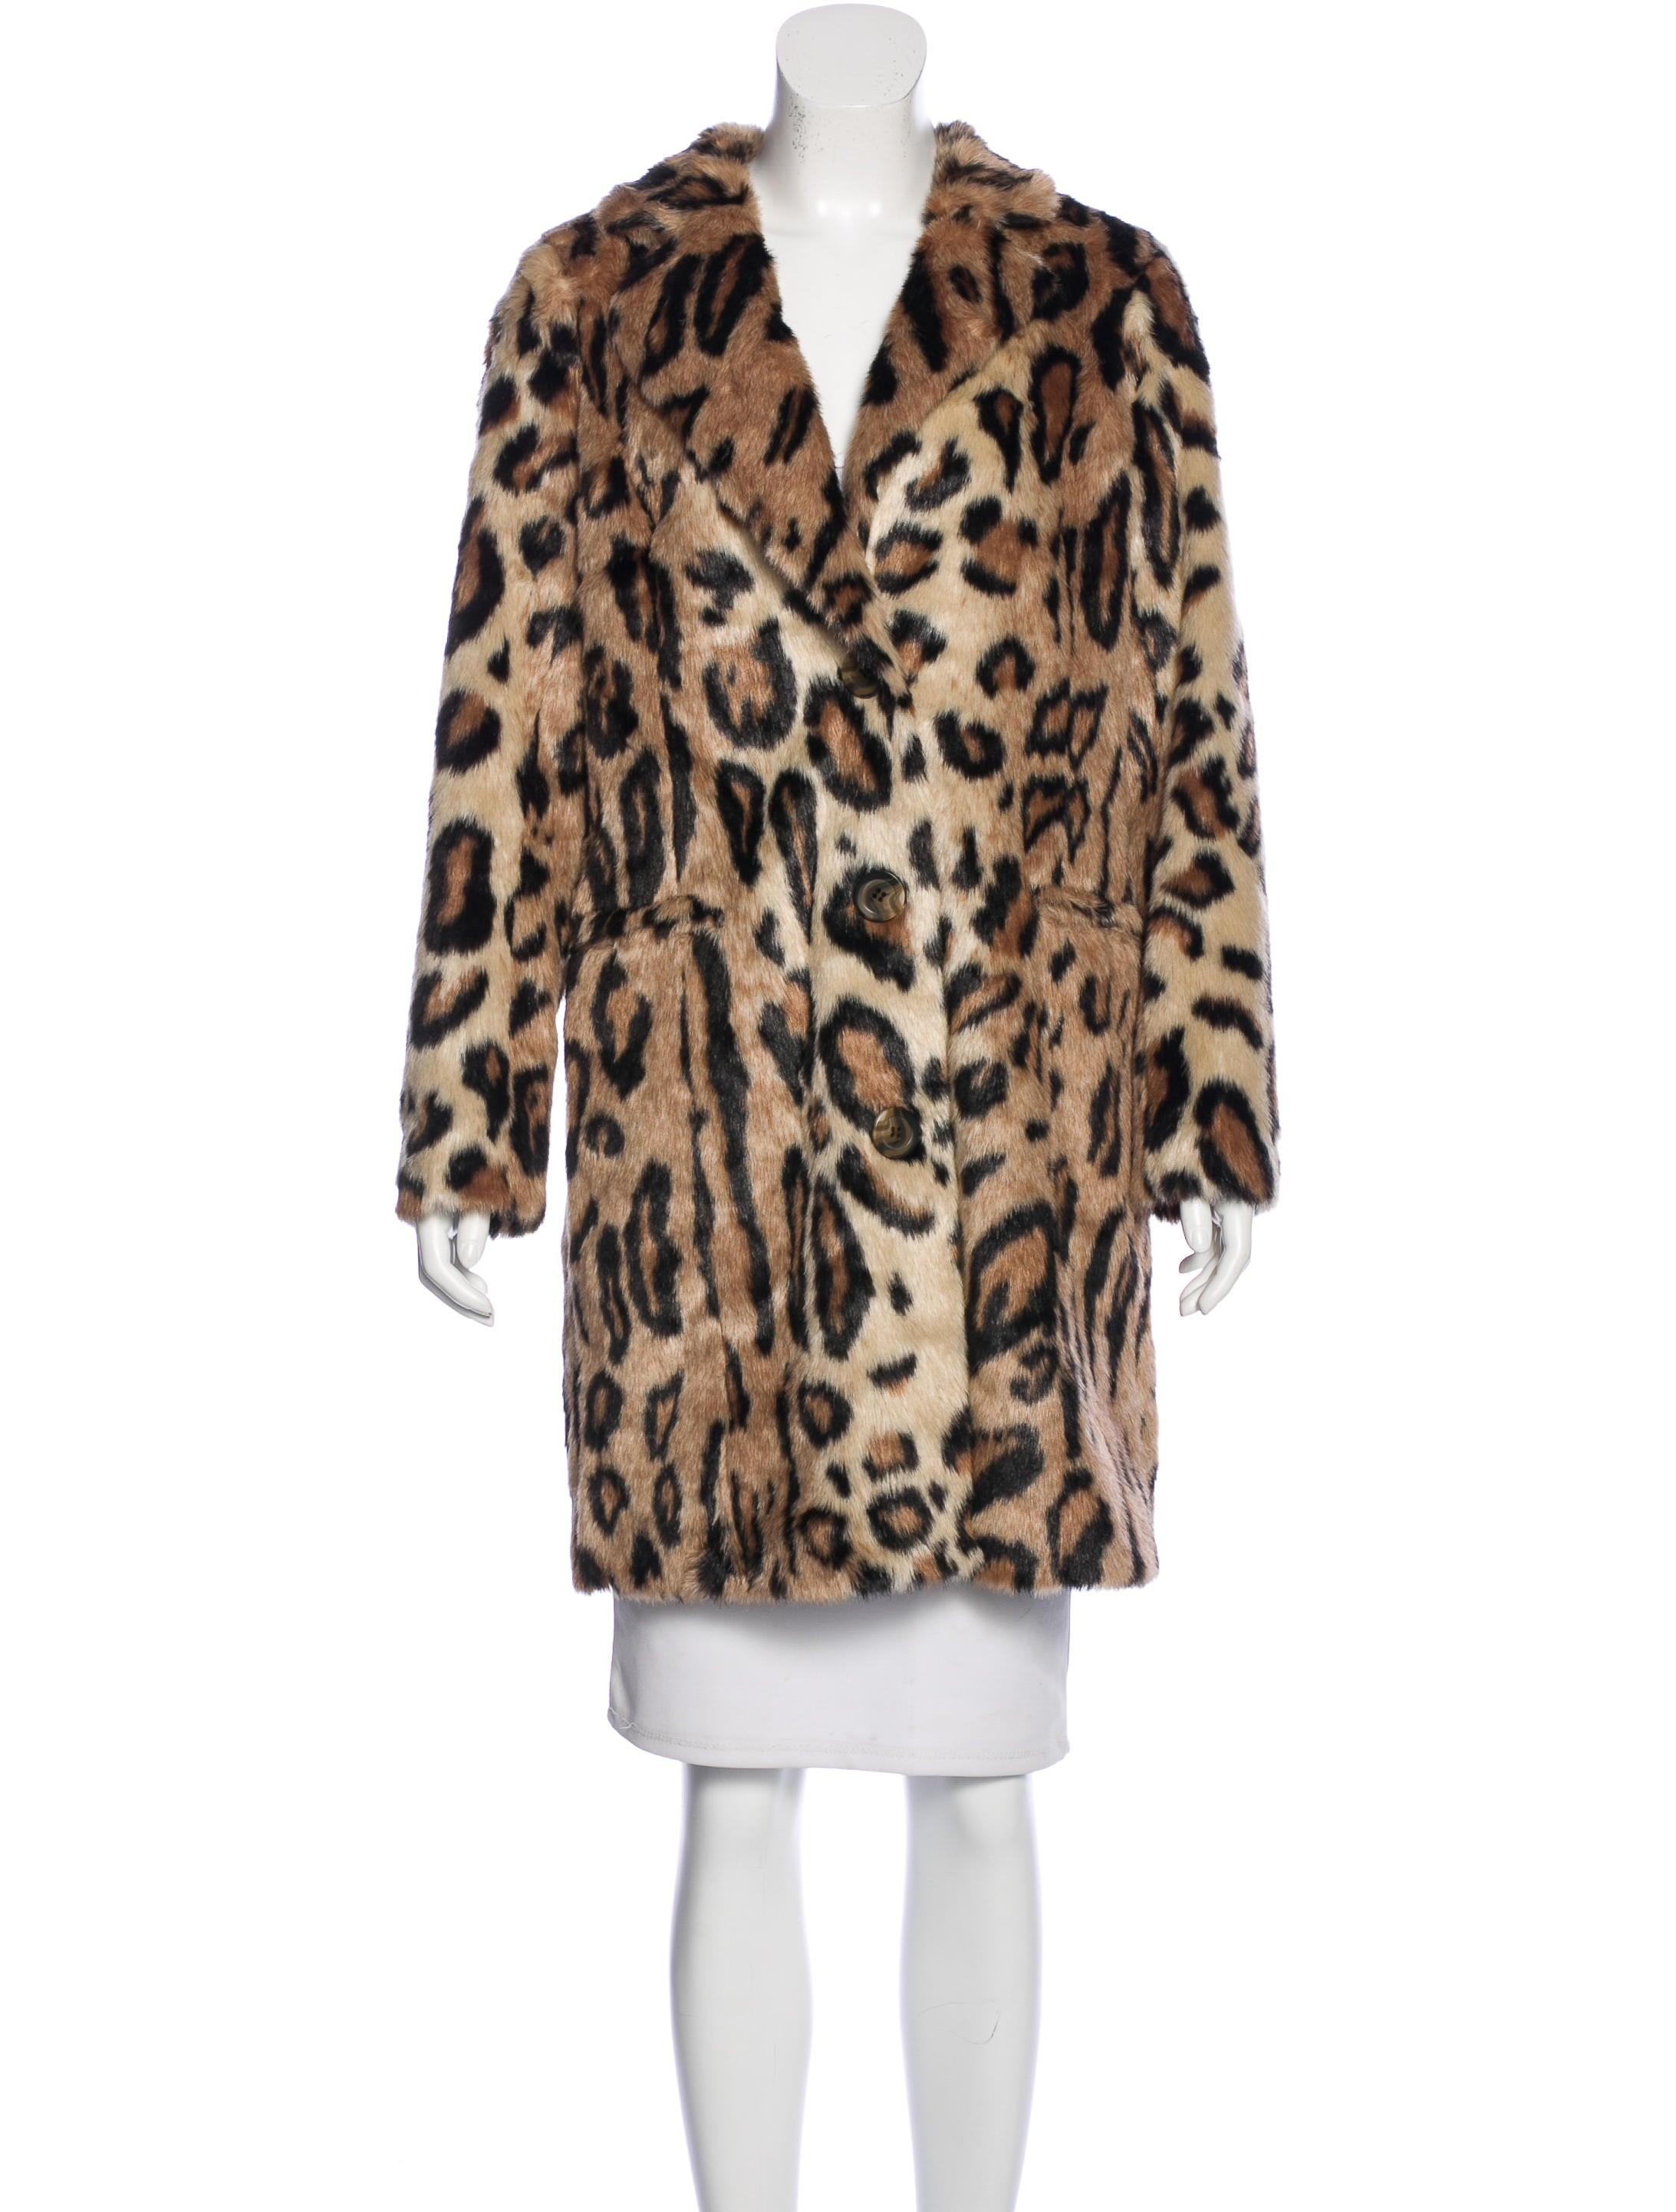 House Of Harlow 1960 Leopard Print Faux Fur Coat Clothing